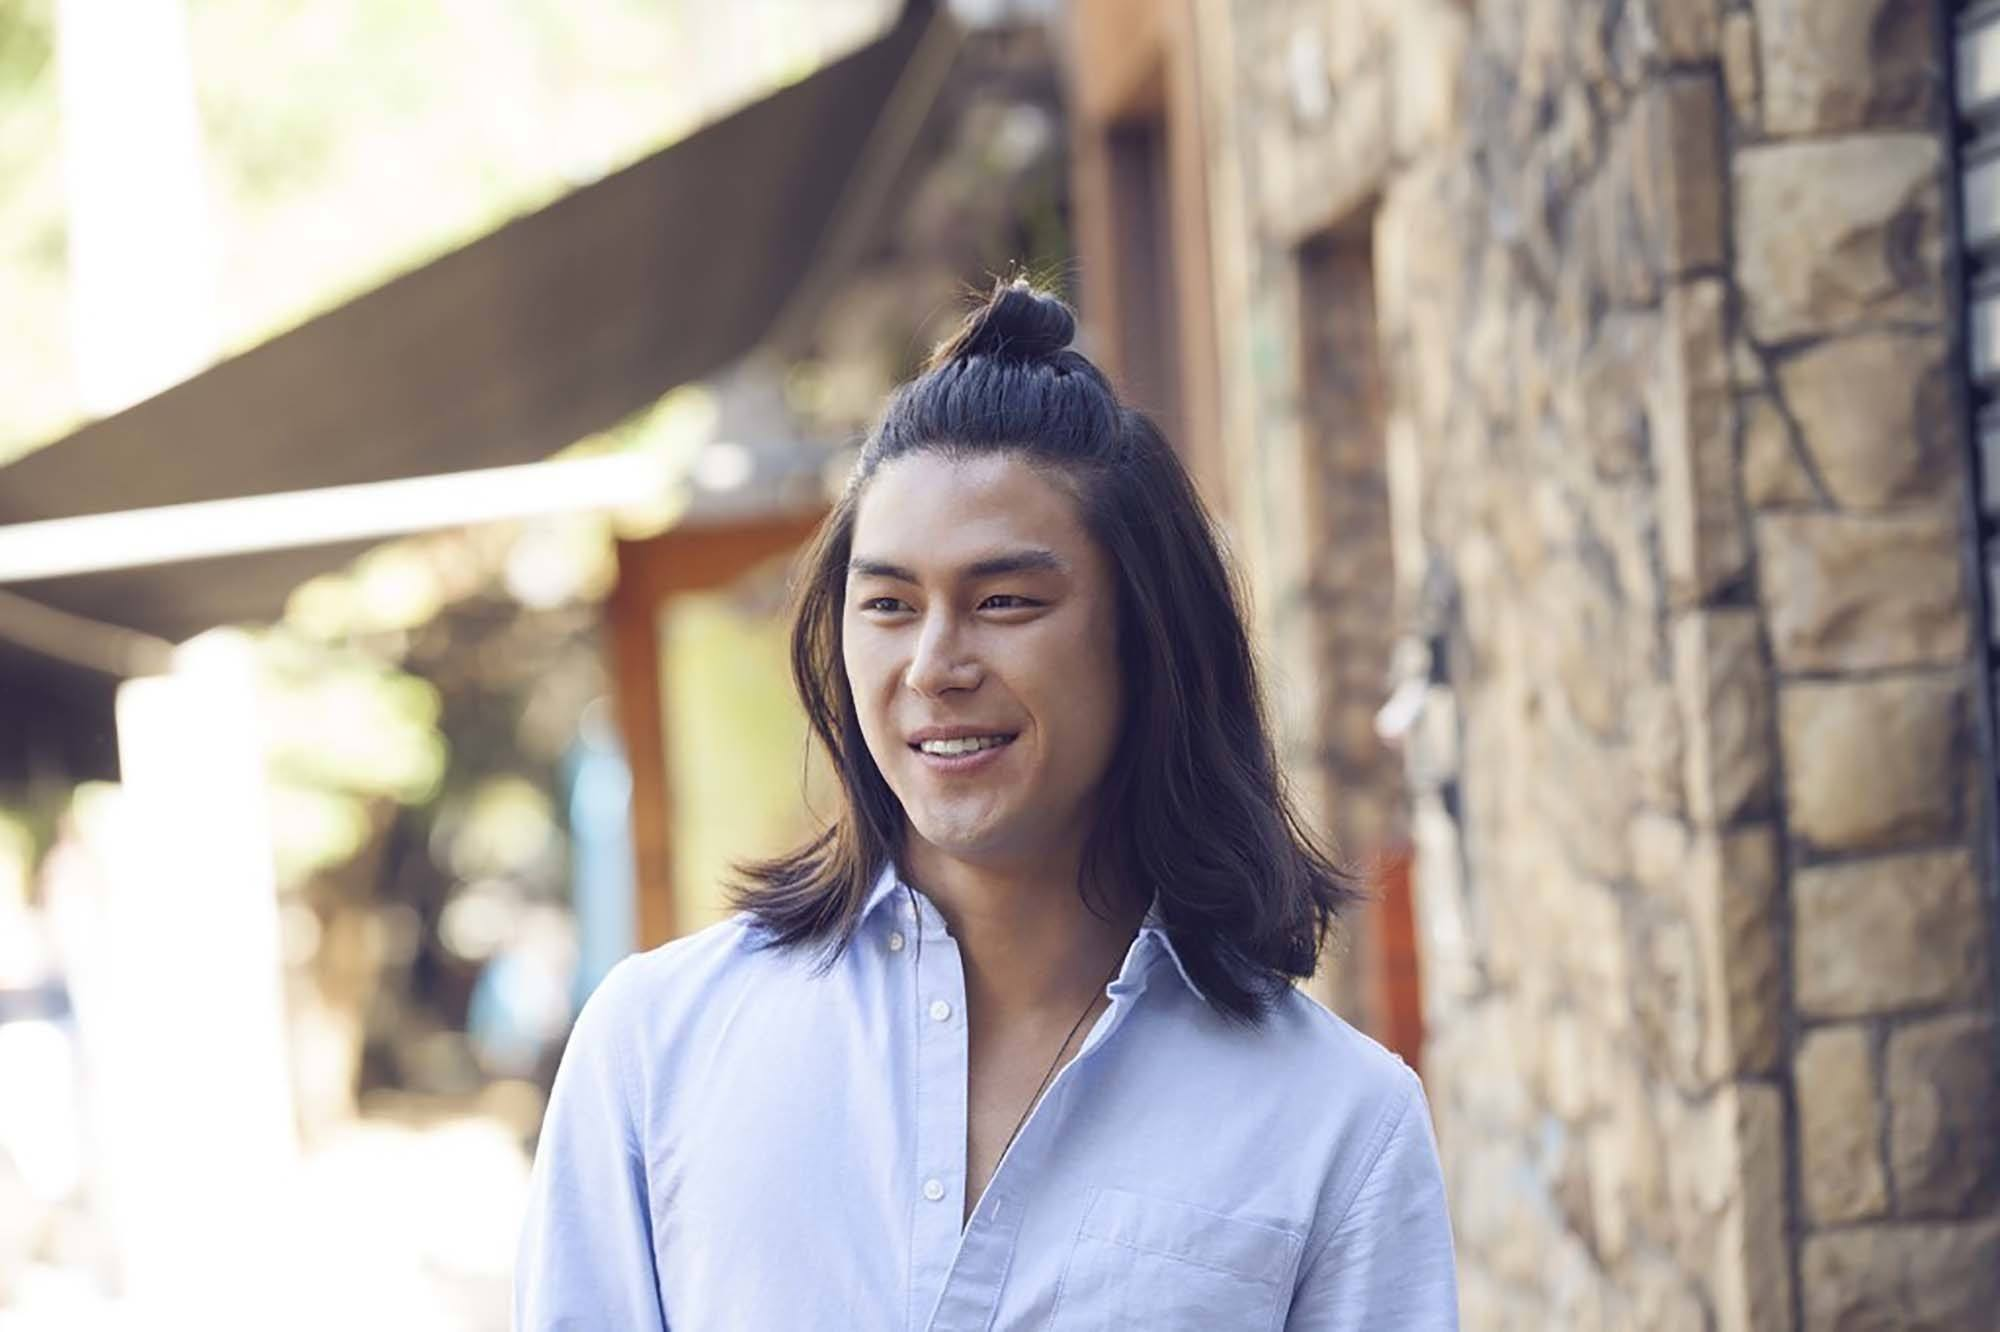 Asian man bun: Man with long black hair with a half up bun wearing a white shirt outdoors